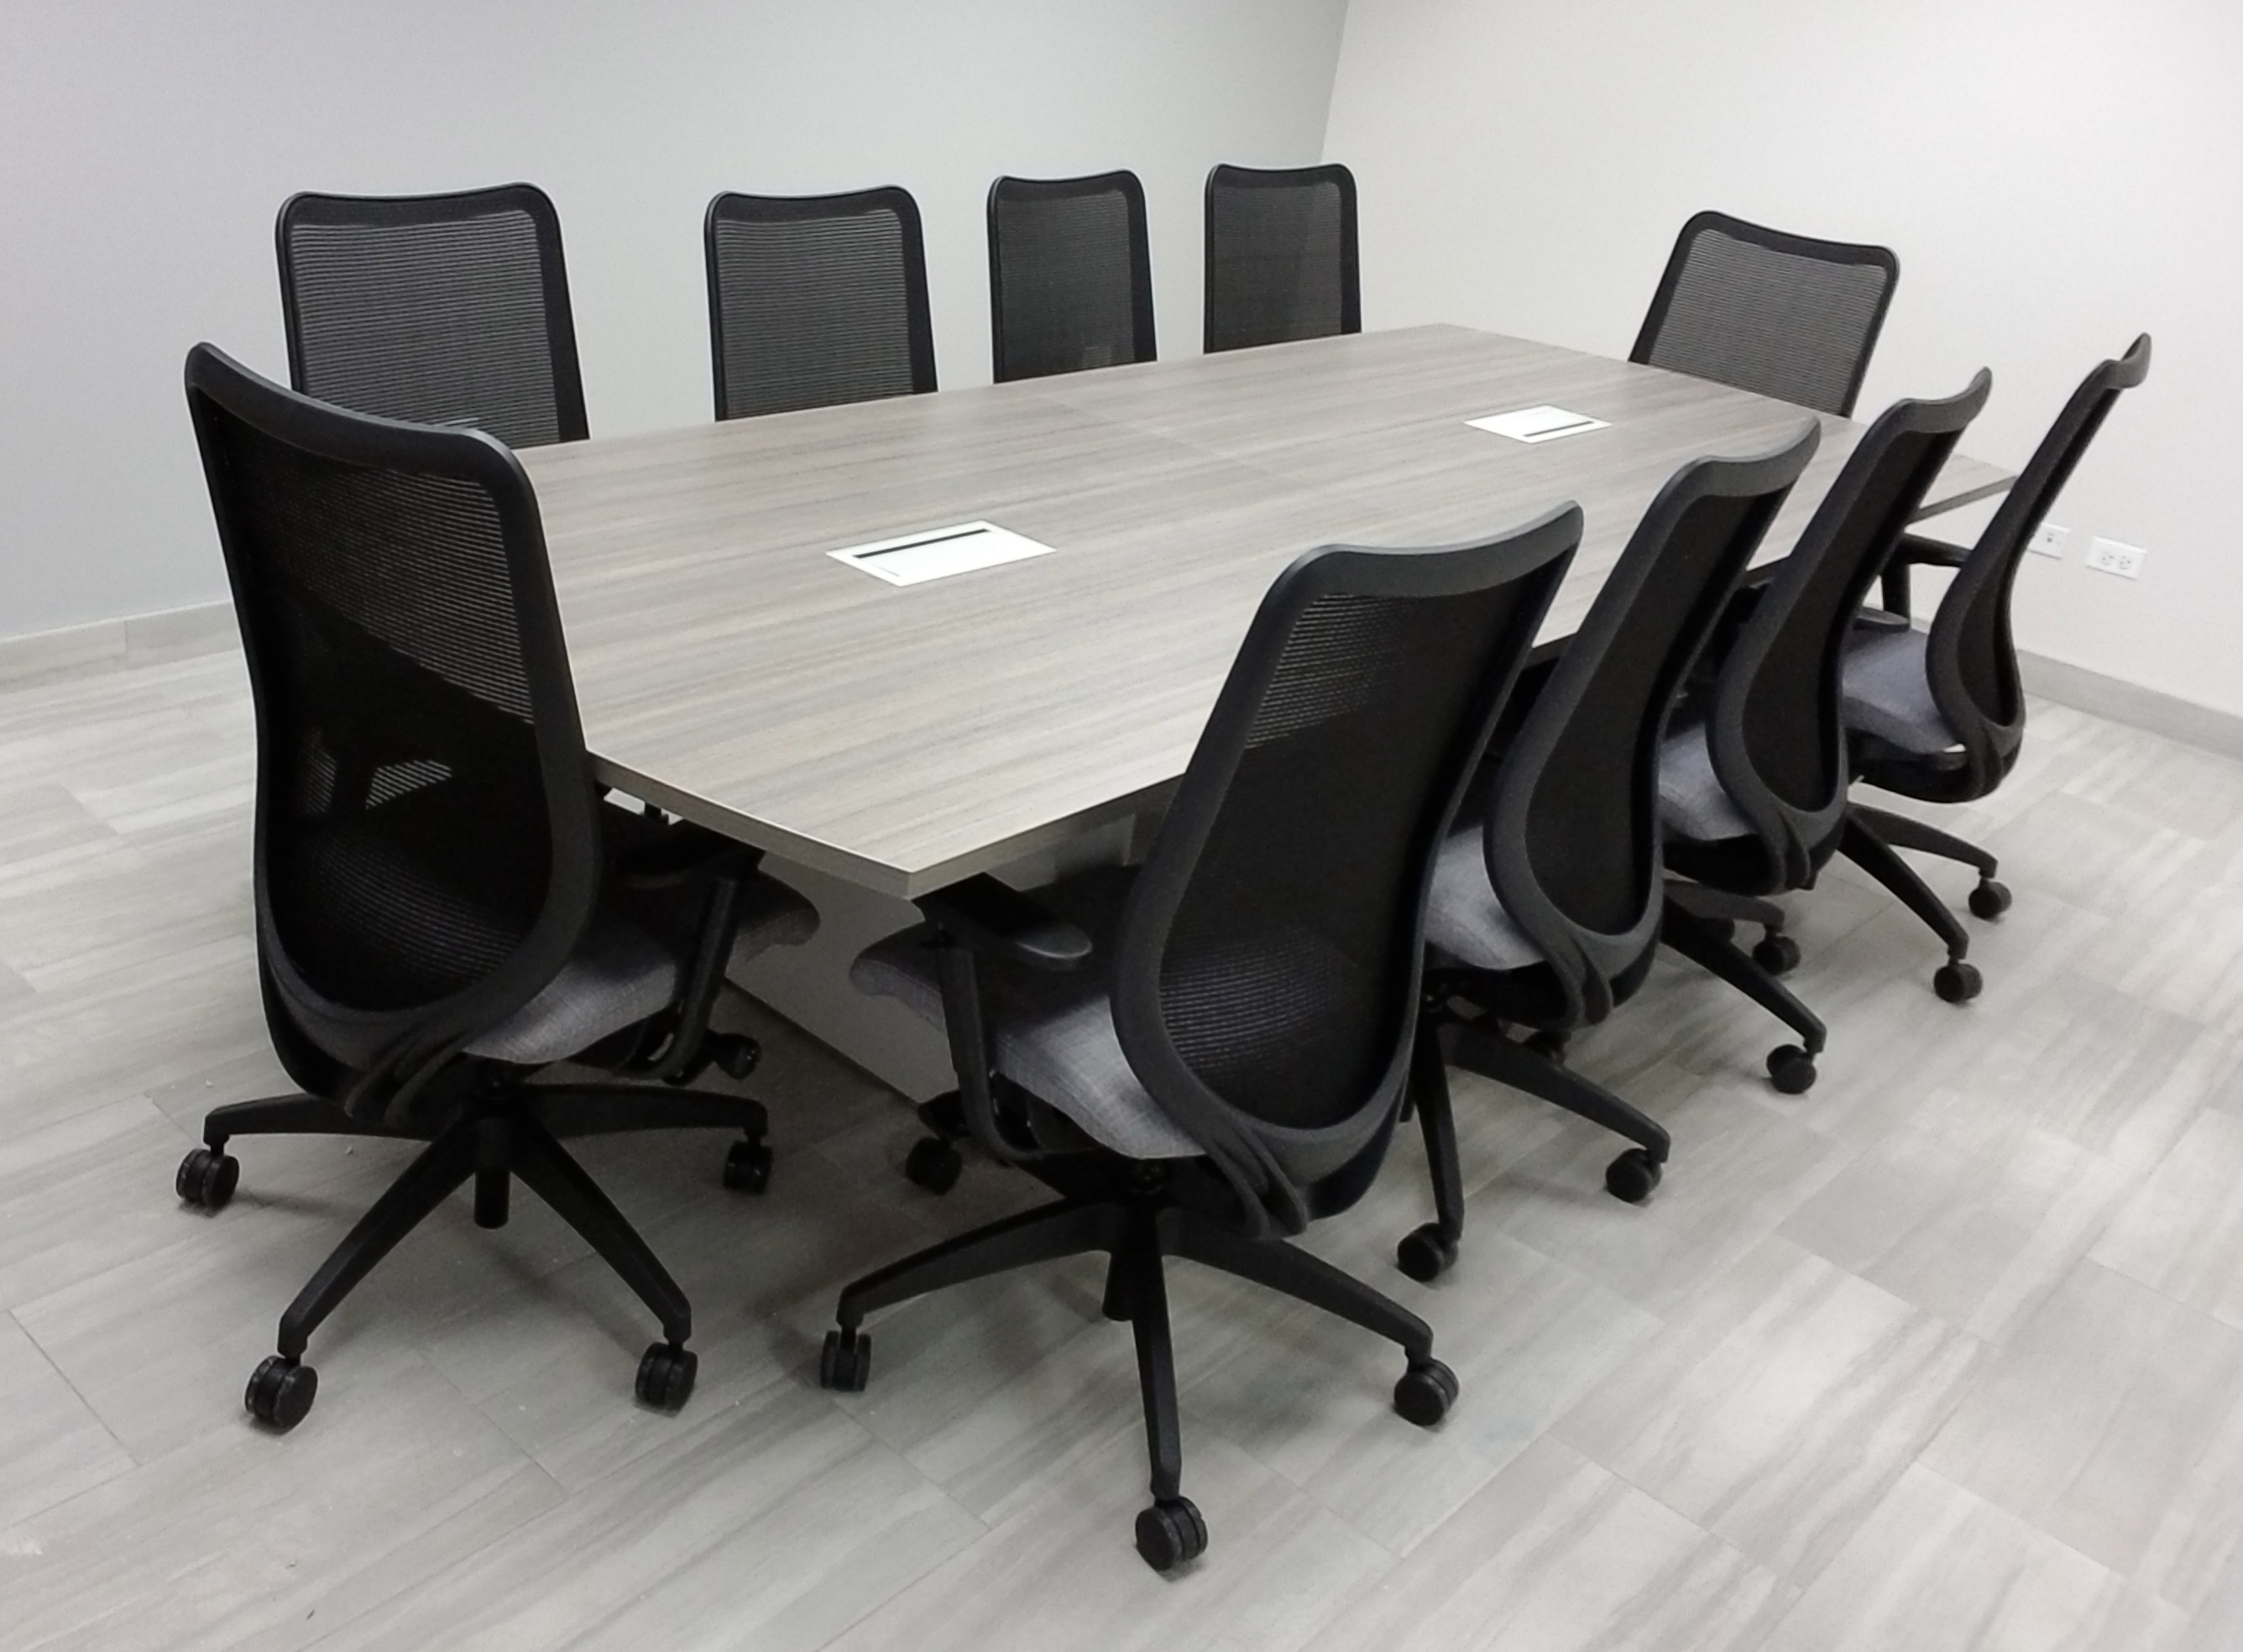 Completed Office Furniture Projects In Chicago Arthur P OHara - Preside conference table